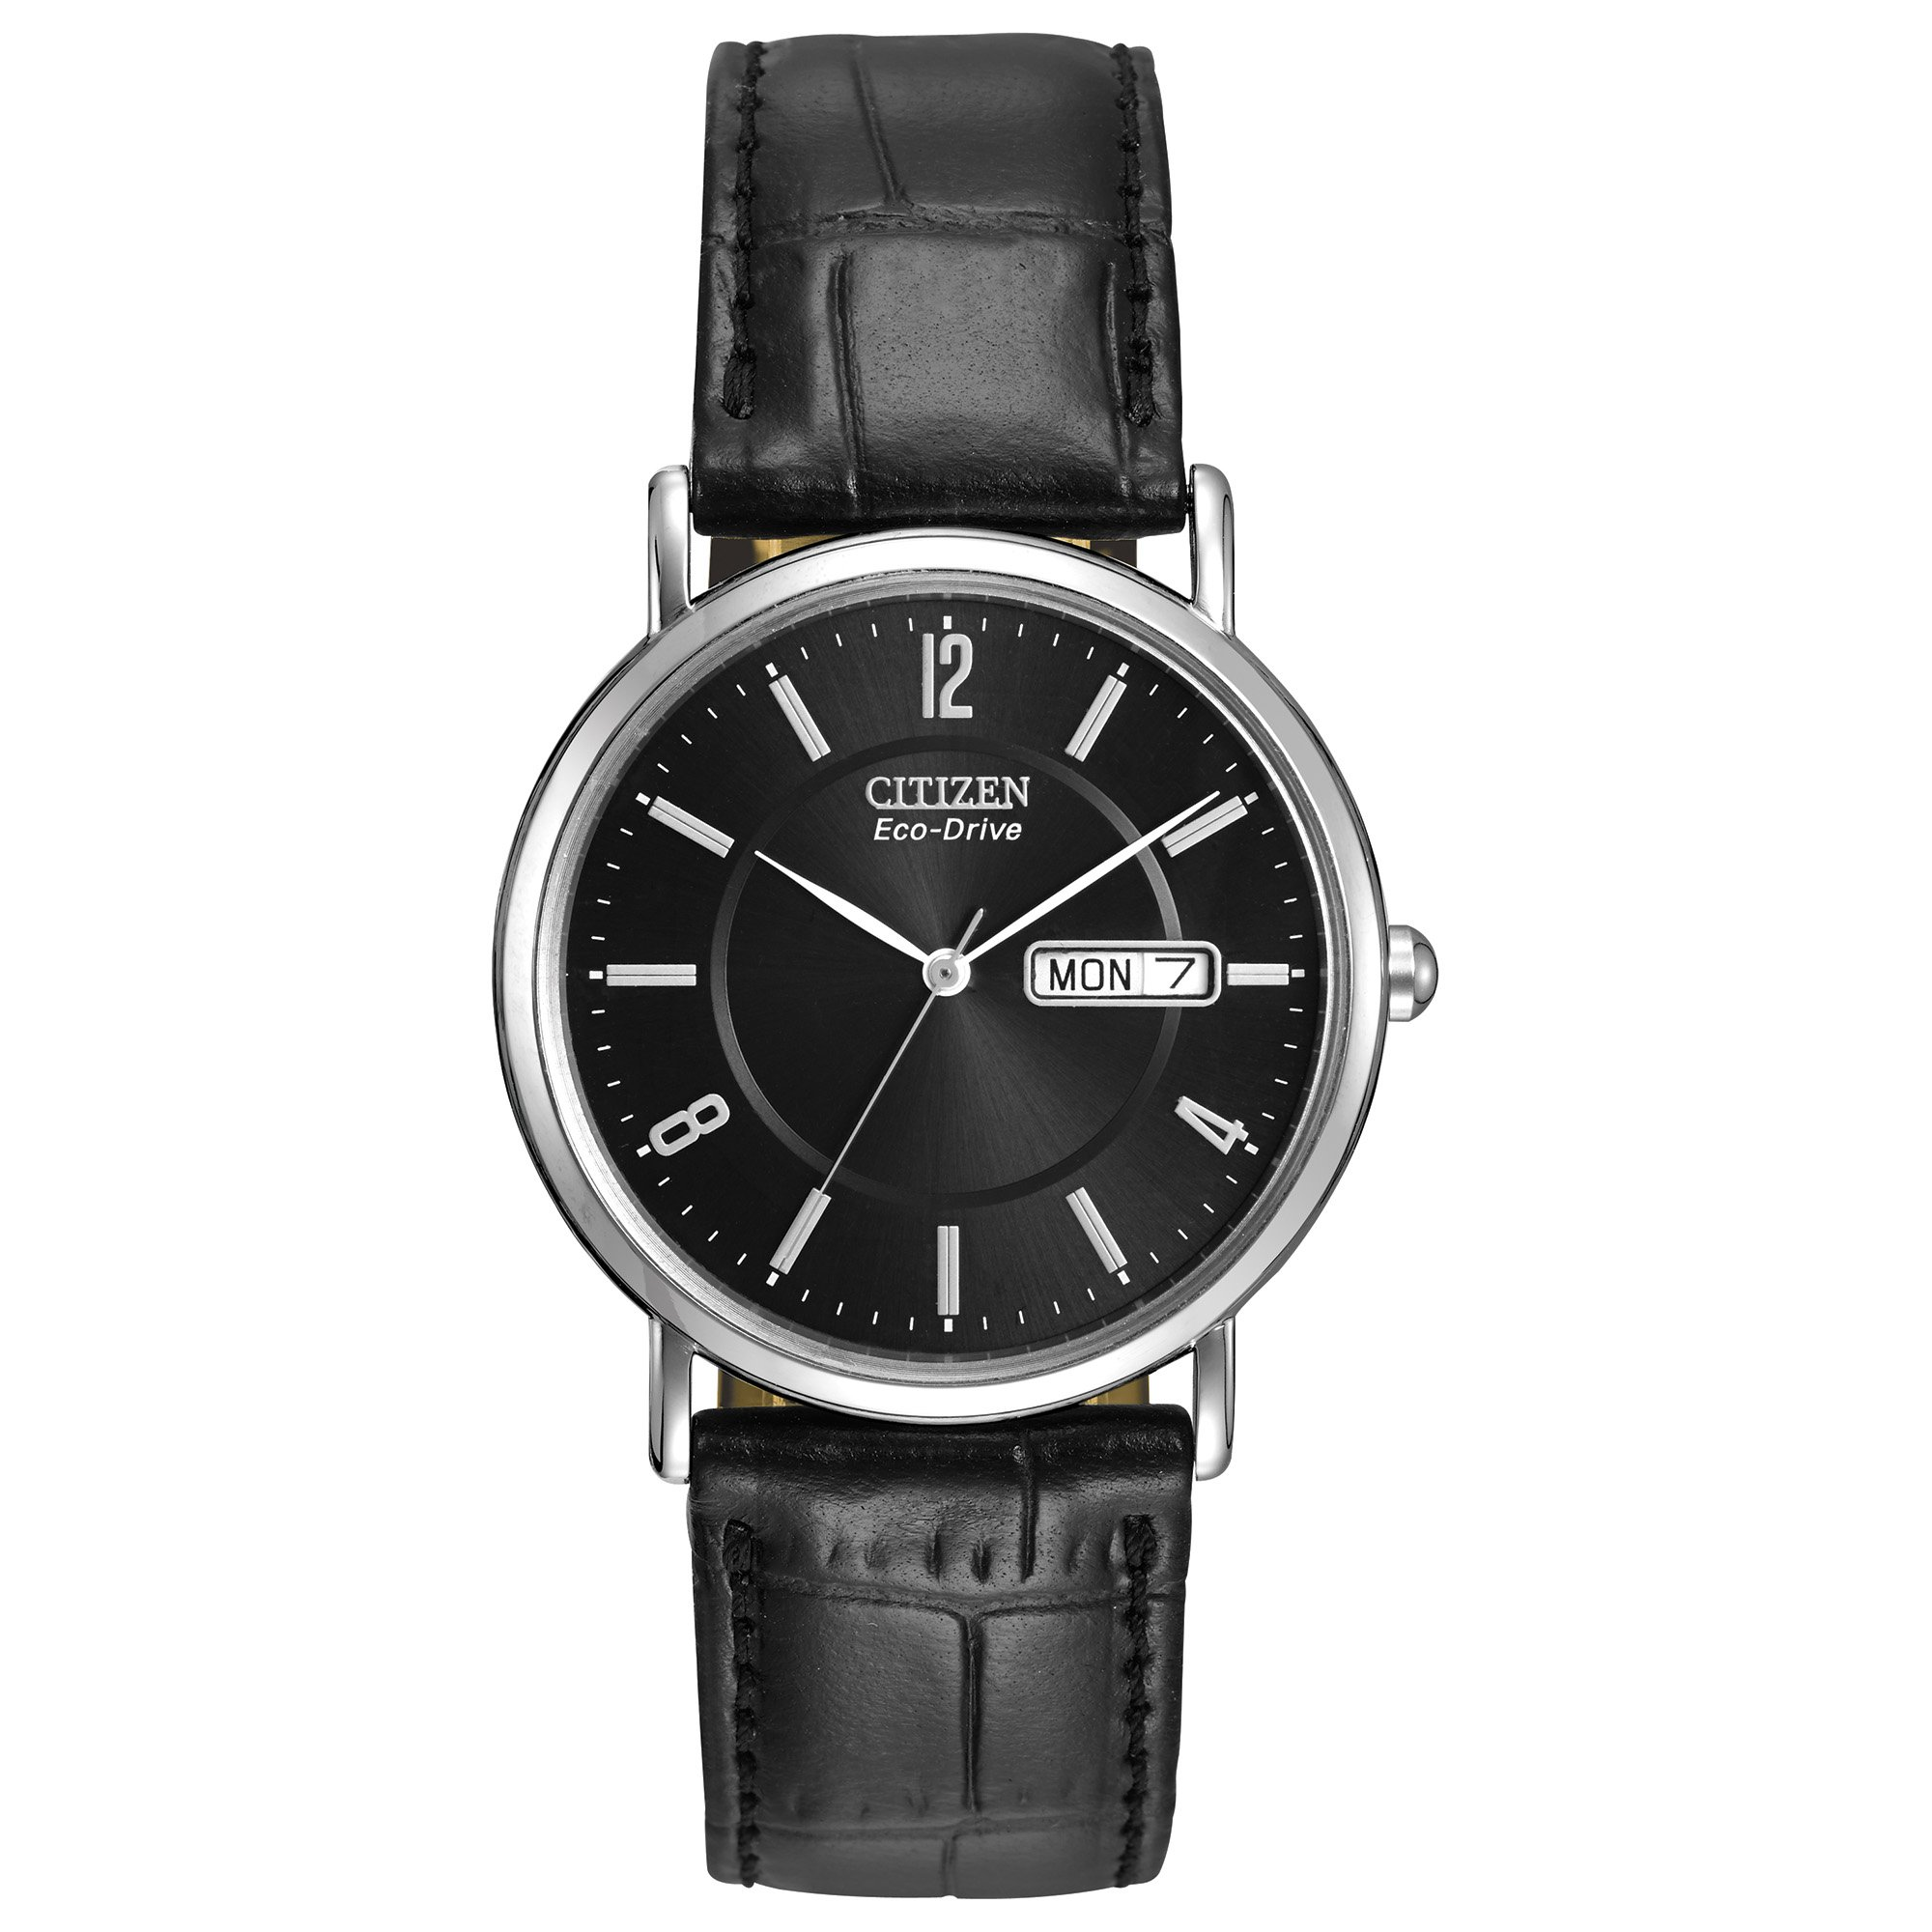 Watches BM8240-03E Eco-Drive Leather Watch